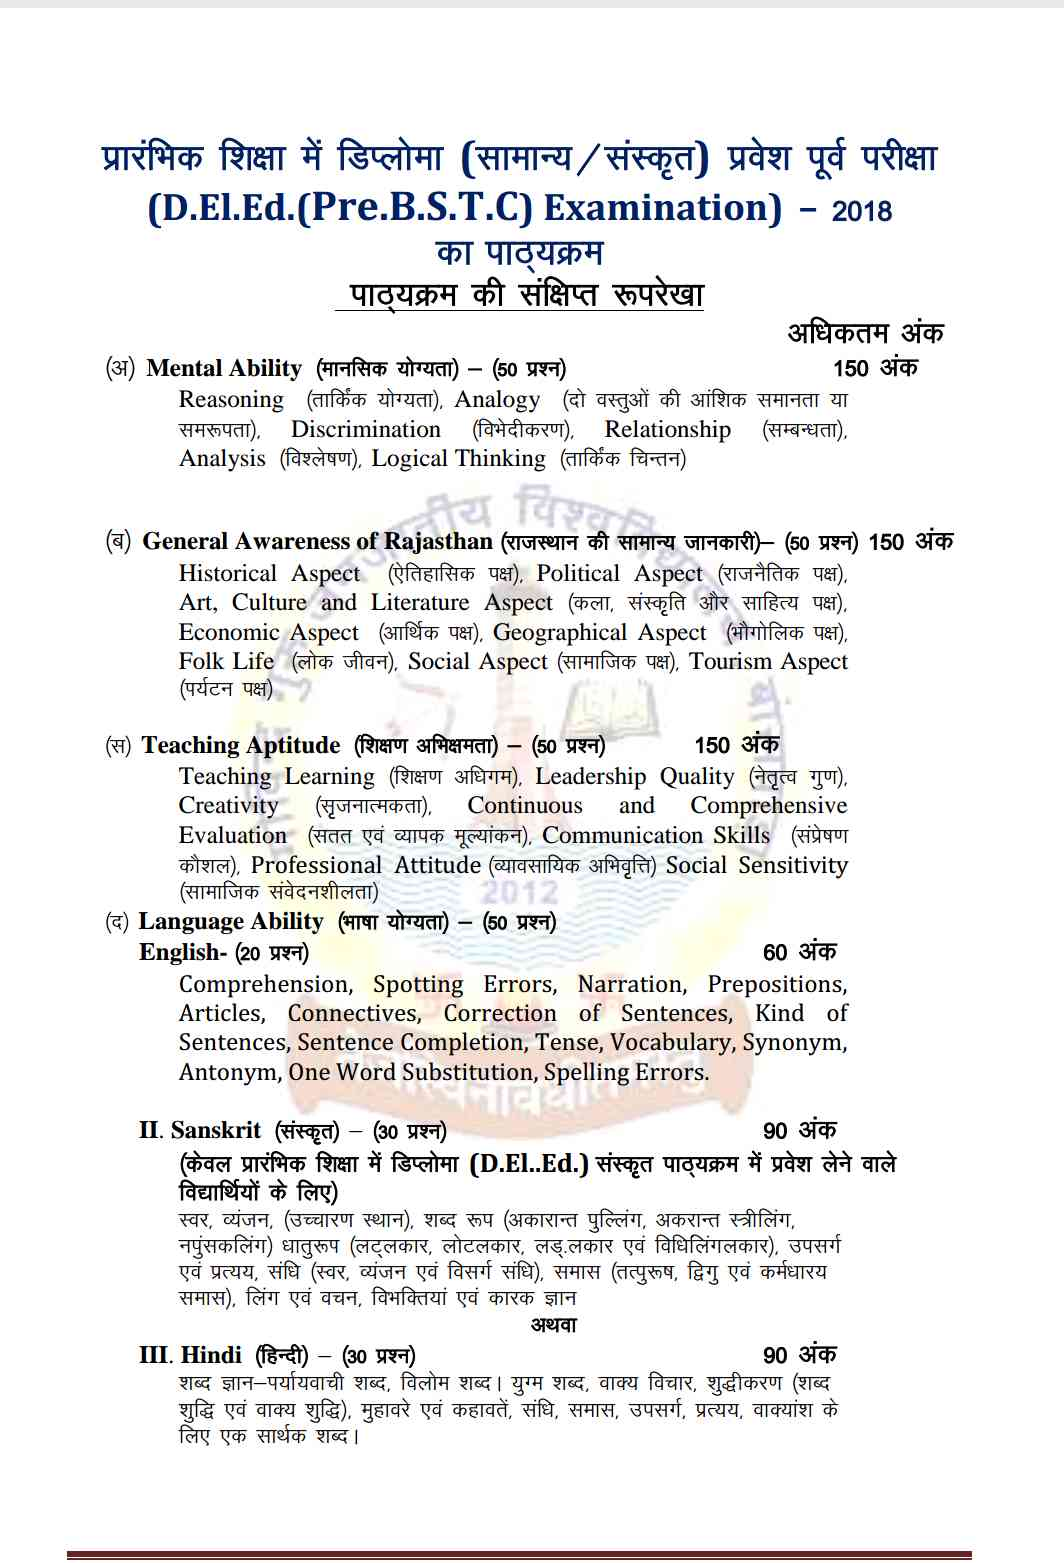 Download BSTC 2018 Syllabus